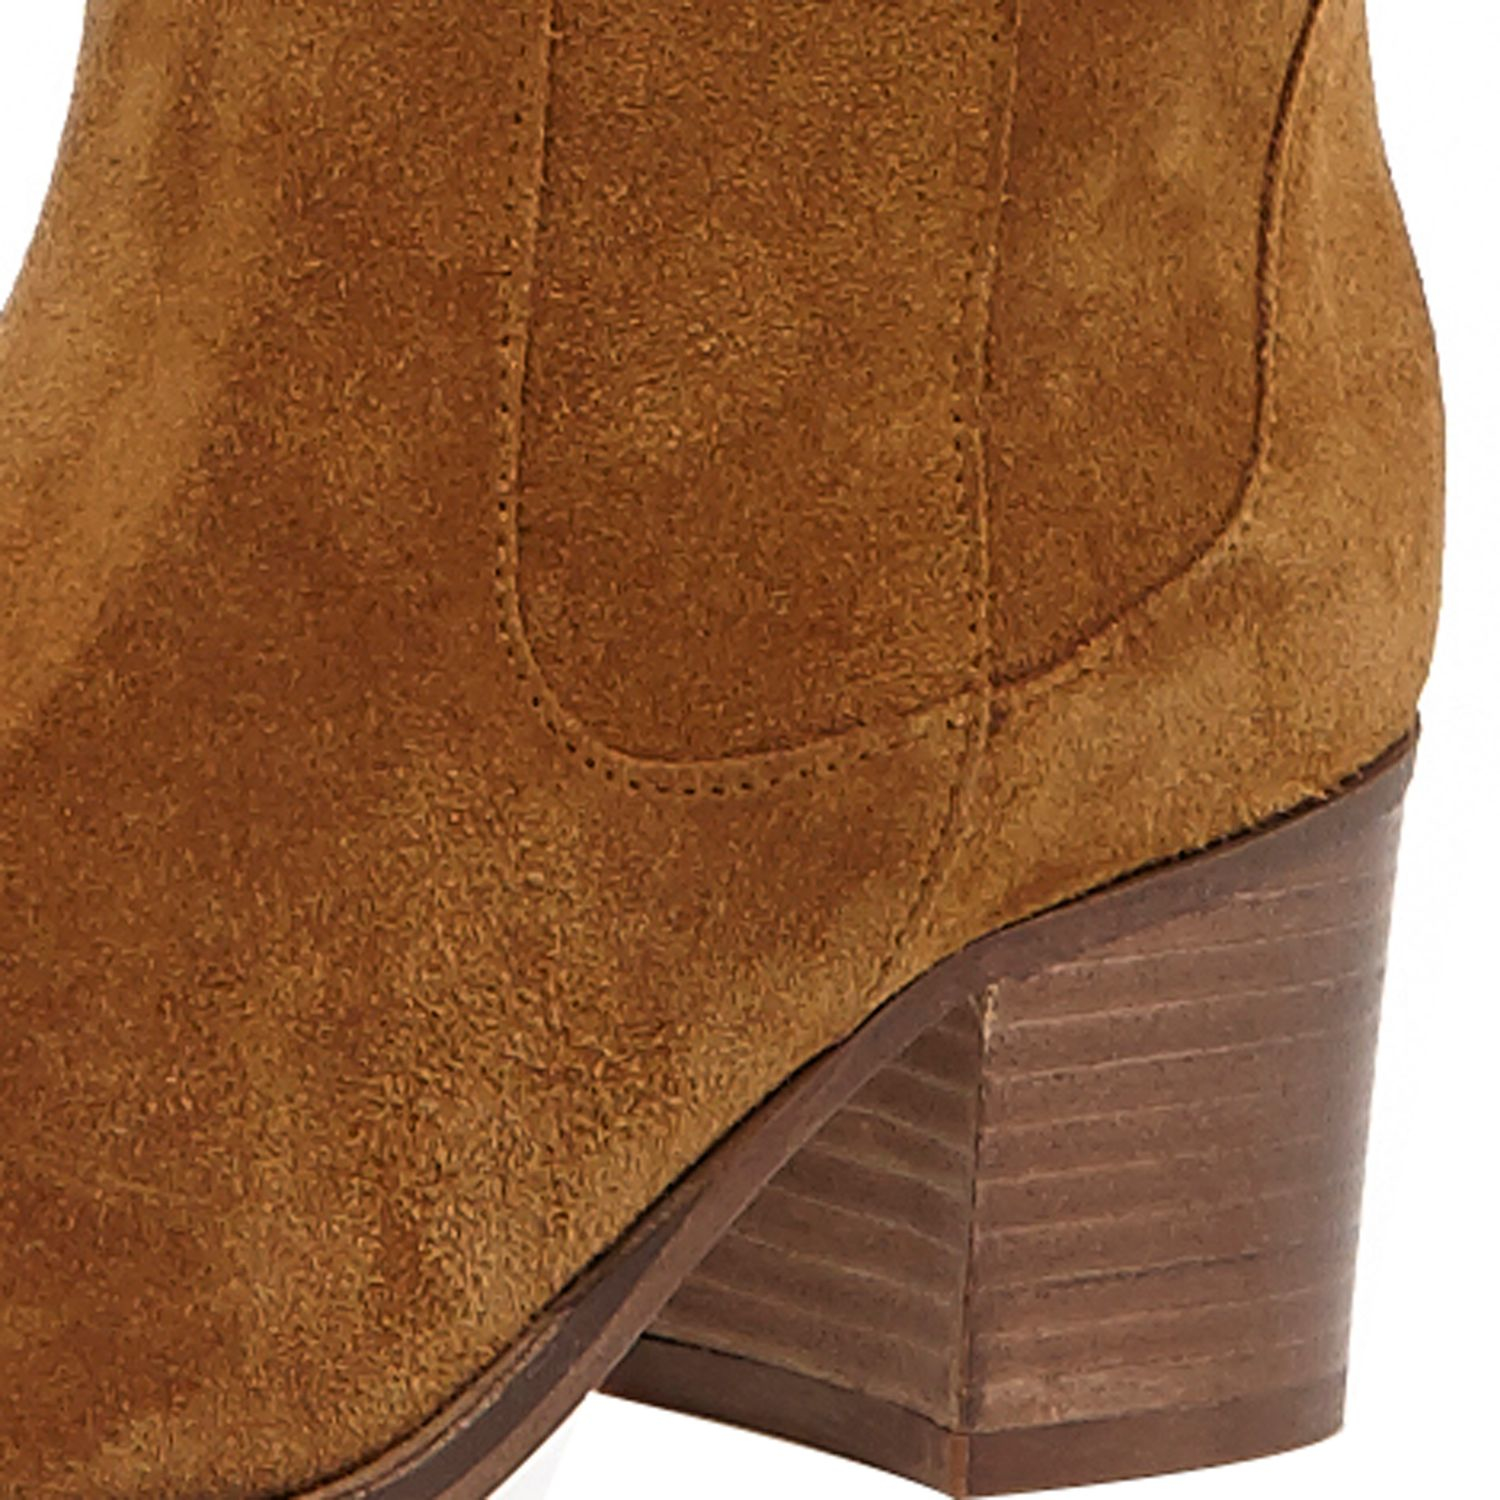 River Island Tan Brown Suede Over The Knee Boots